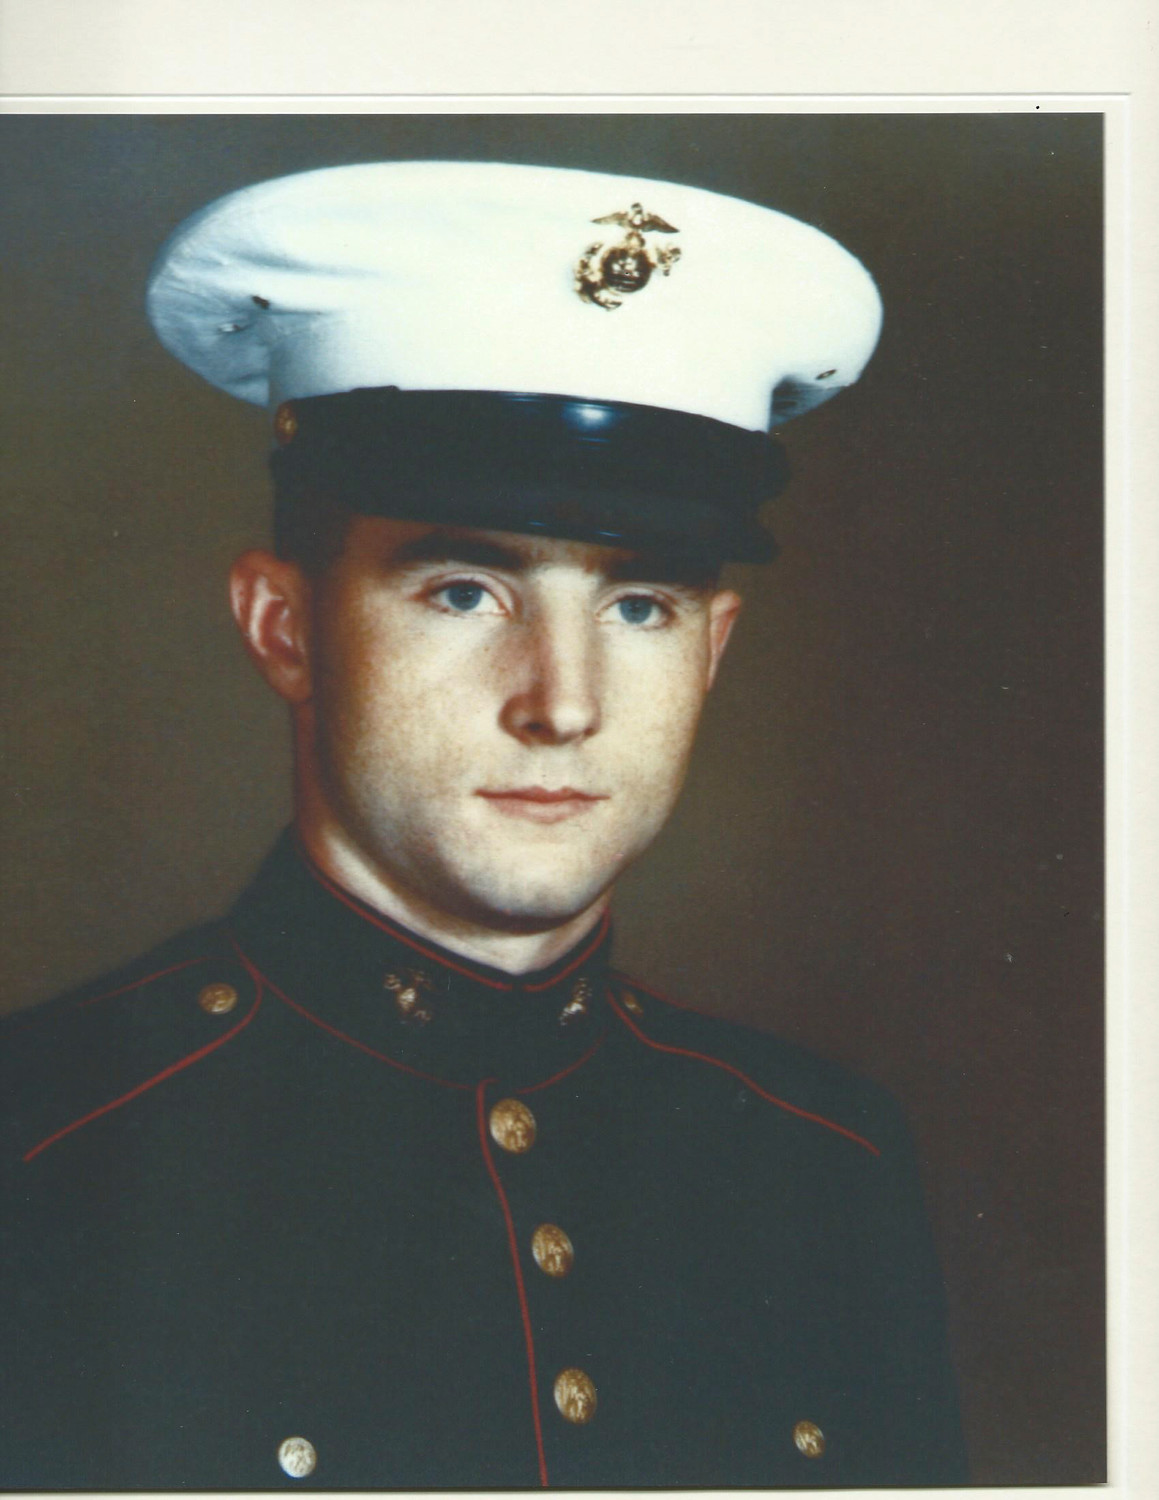 Patrick Gallagher moved to Lynbrook when he was 18 and fought in Vietnam, where he earned the Navy Cross and was killed in battle when he was 23.